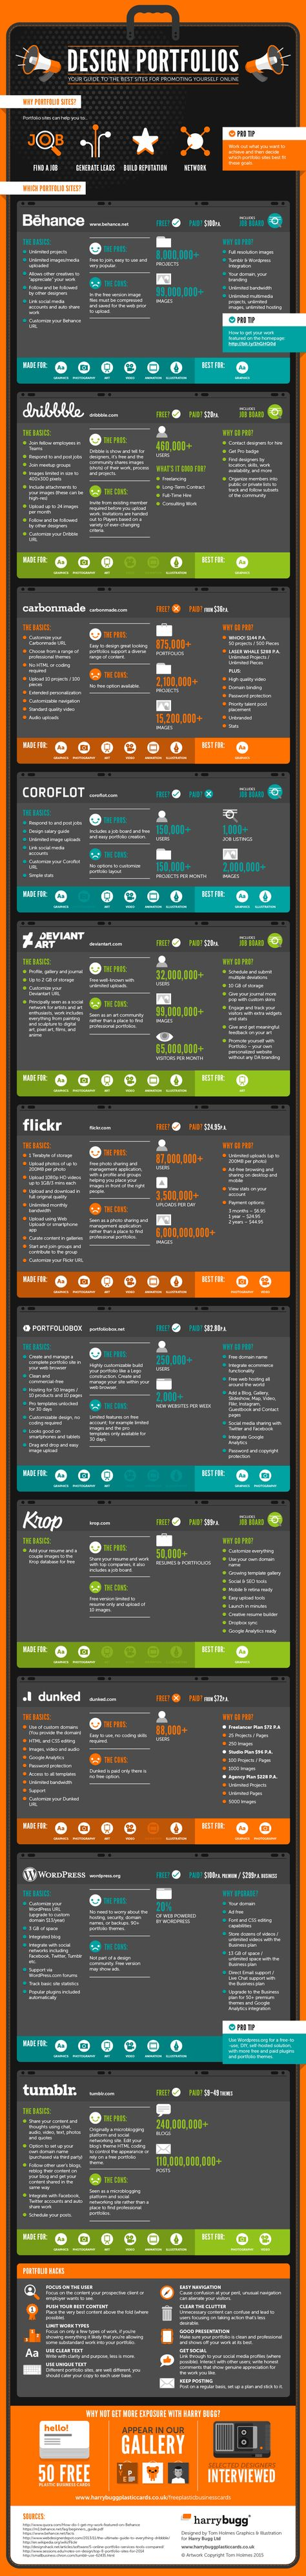 The Most Invaluable Websites for Promoting Creative Work #Infographic via @HubSpot